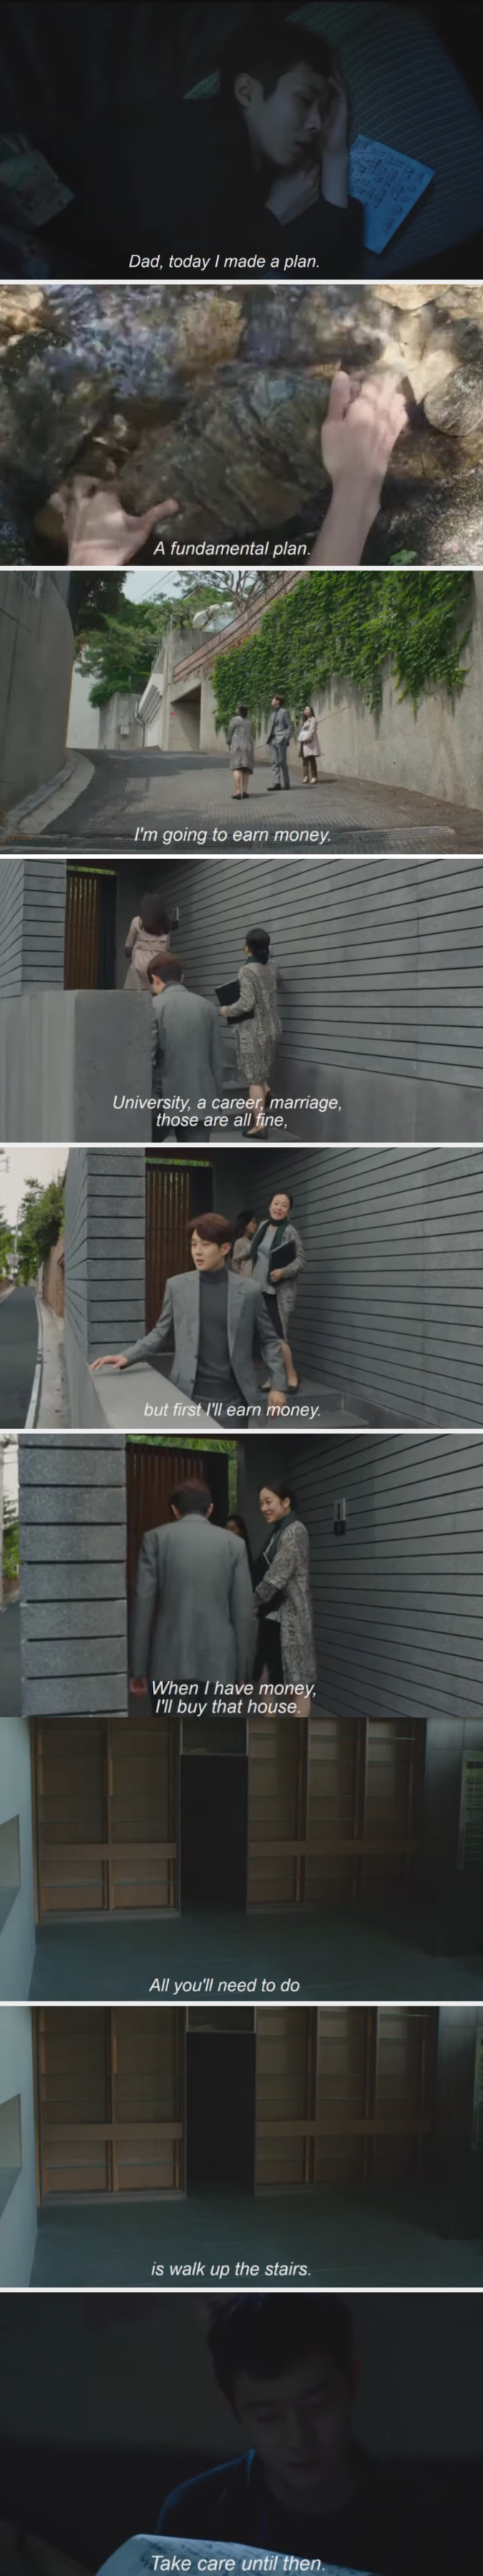 Ki-Woo promises to buy the house where his father is trapped